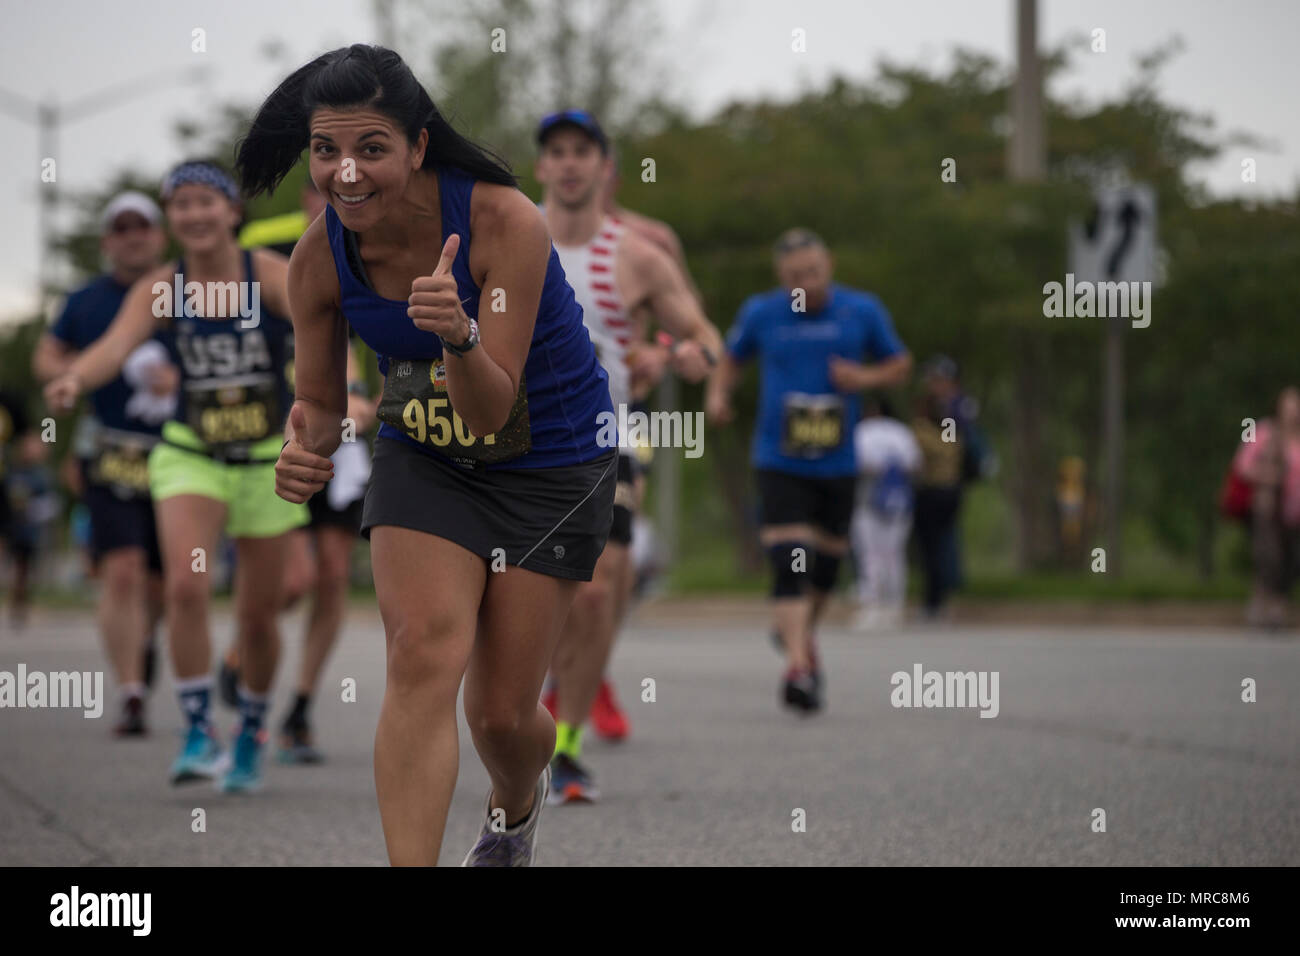 Brenna Cliver poses while running the Devil Dog Double, part of the 10th Annual Marine Corps Historic Half, (MCHH) Fredericksburg, Va., May 21, 2017. The MCHH attracts over 8,000 participants and features the Marine Corps Semper 5ive and the Devil Dog Double. (U.S. Marine Corps photo by Sgt. John M. Raufmann) Stock Photo